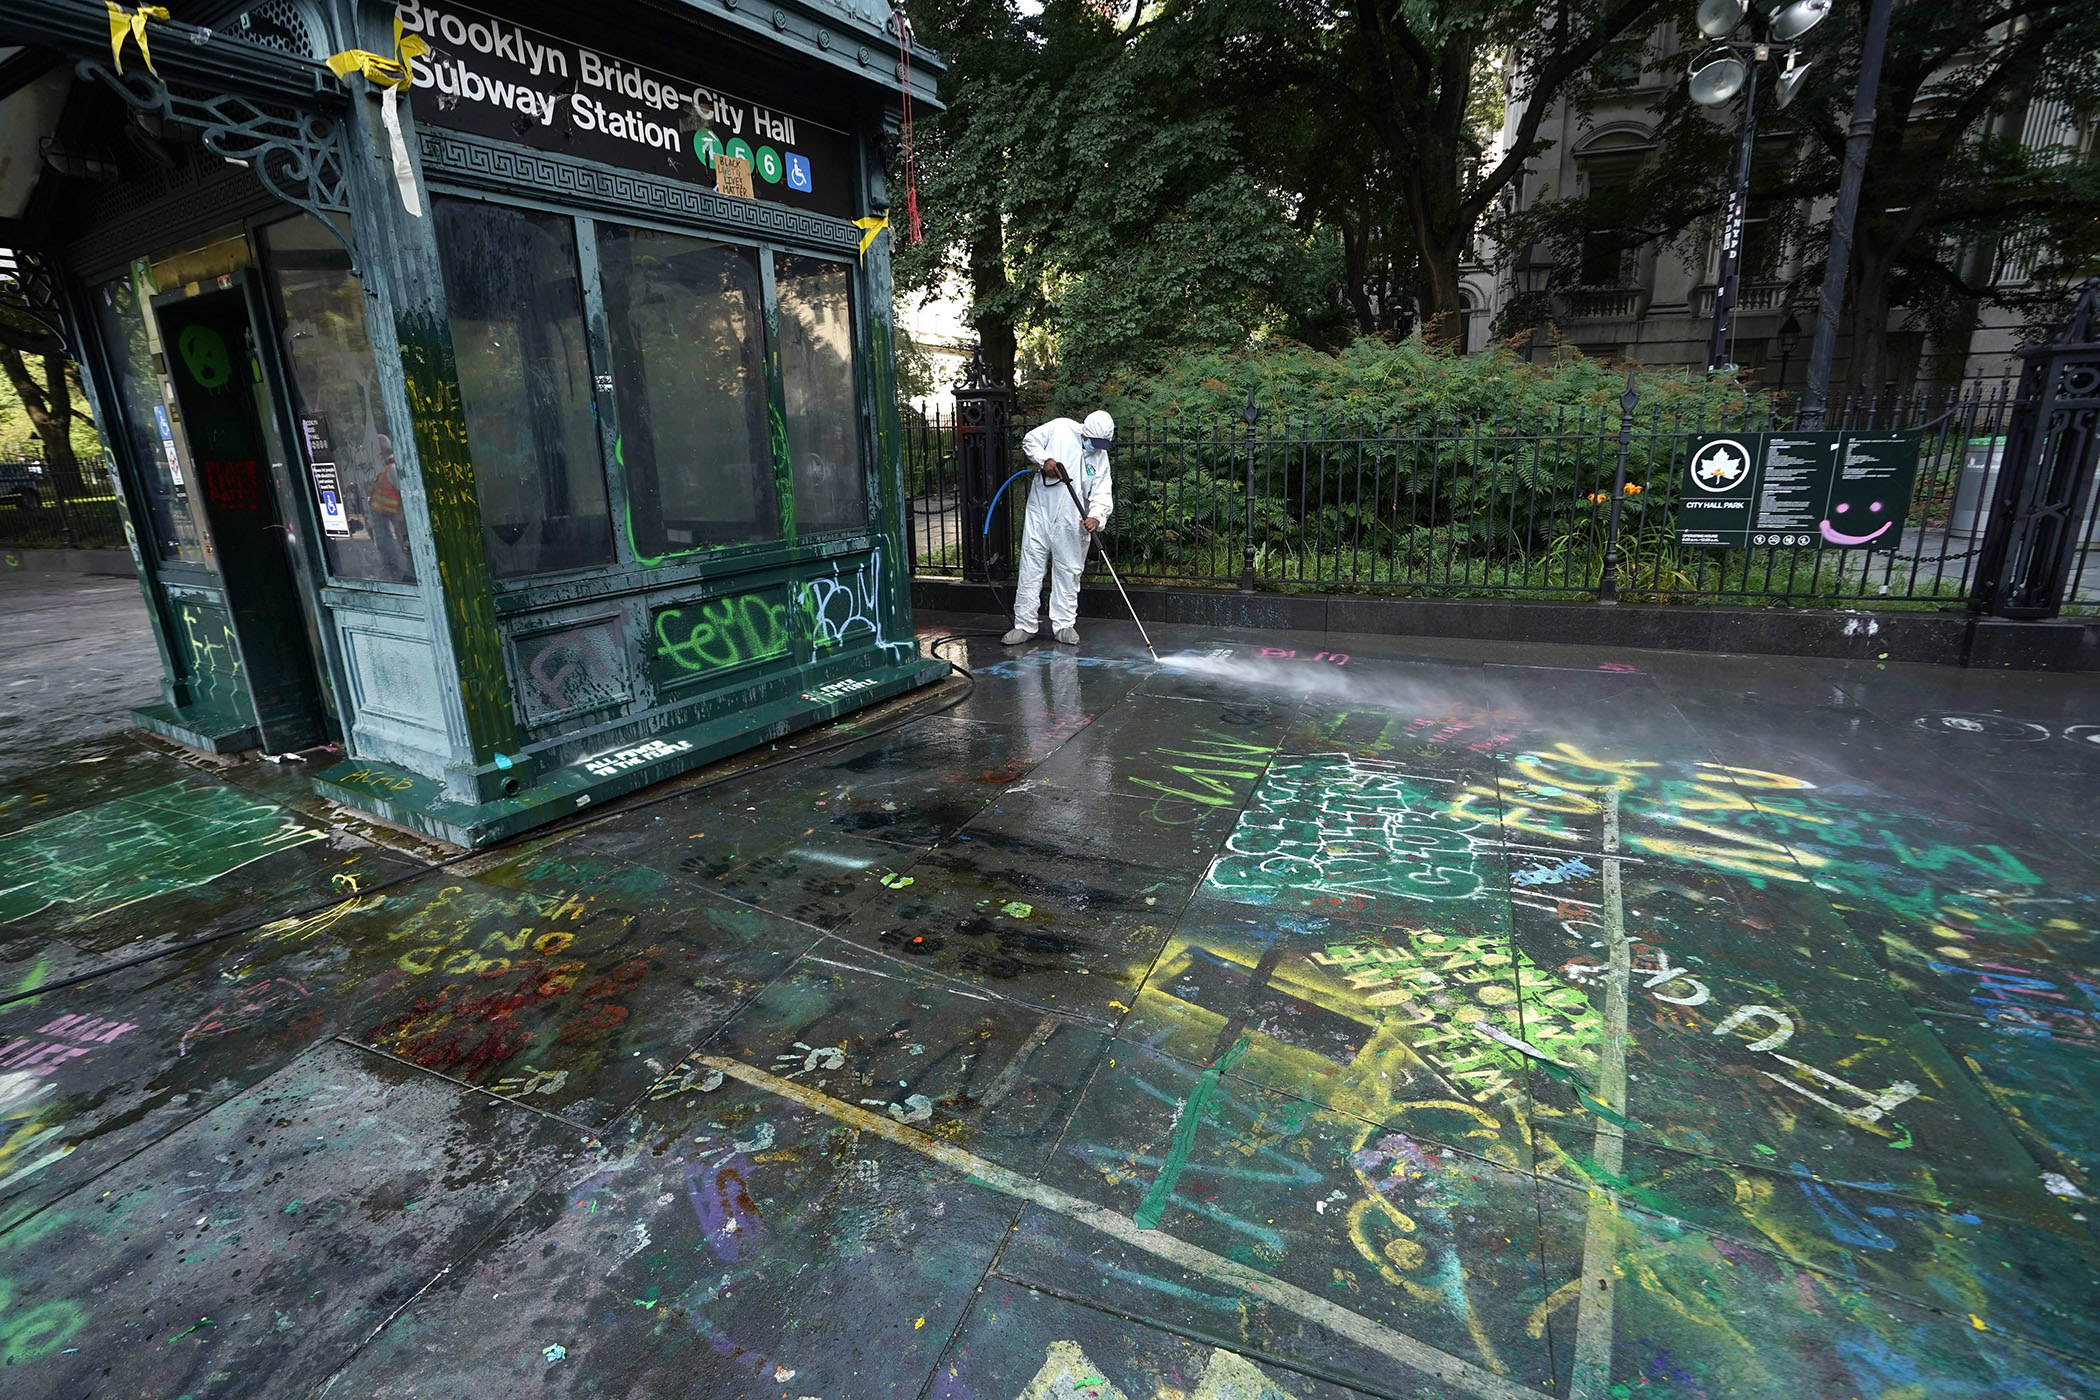 A sanitation worker dressed in an all-white uniform washes graffiti on the ground outside the Brooklyn Bridge–City Hall Subway Station